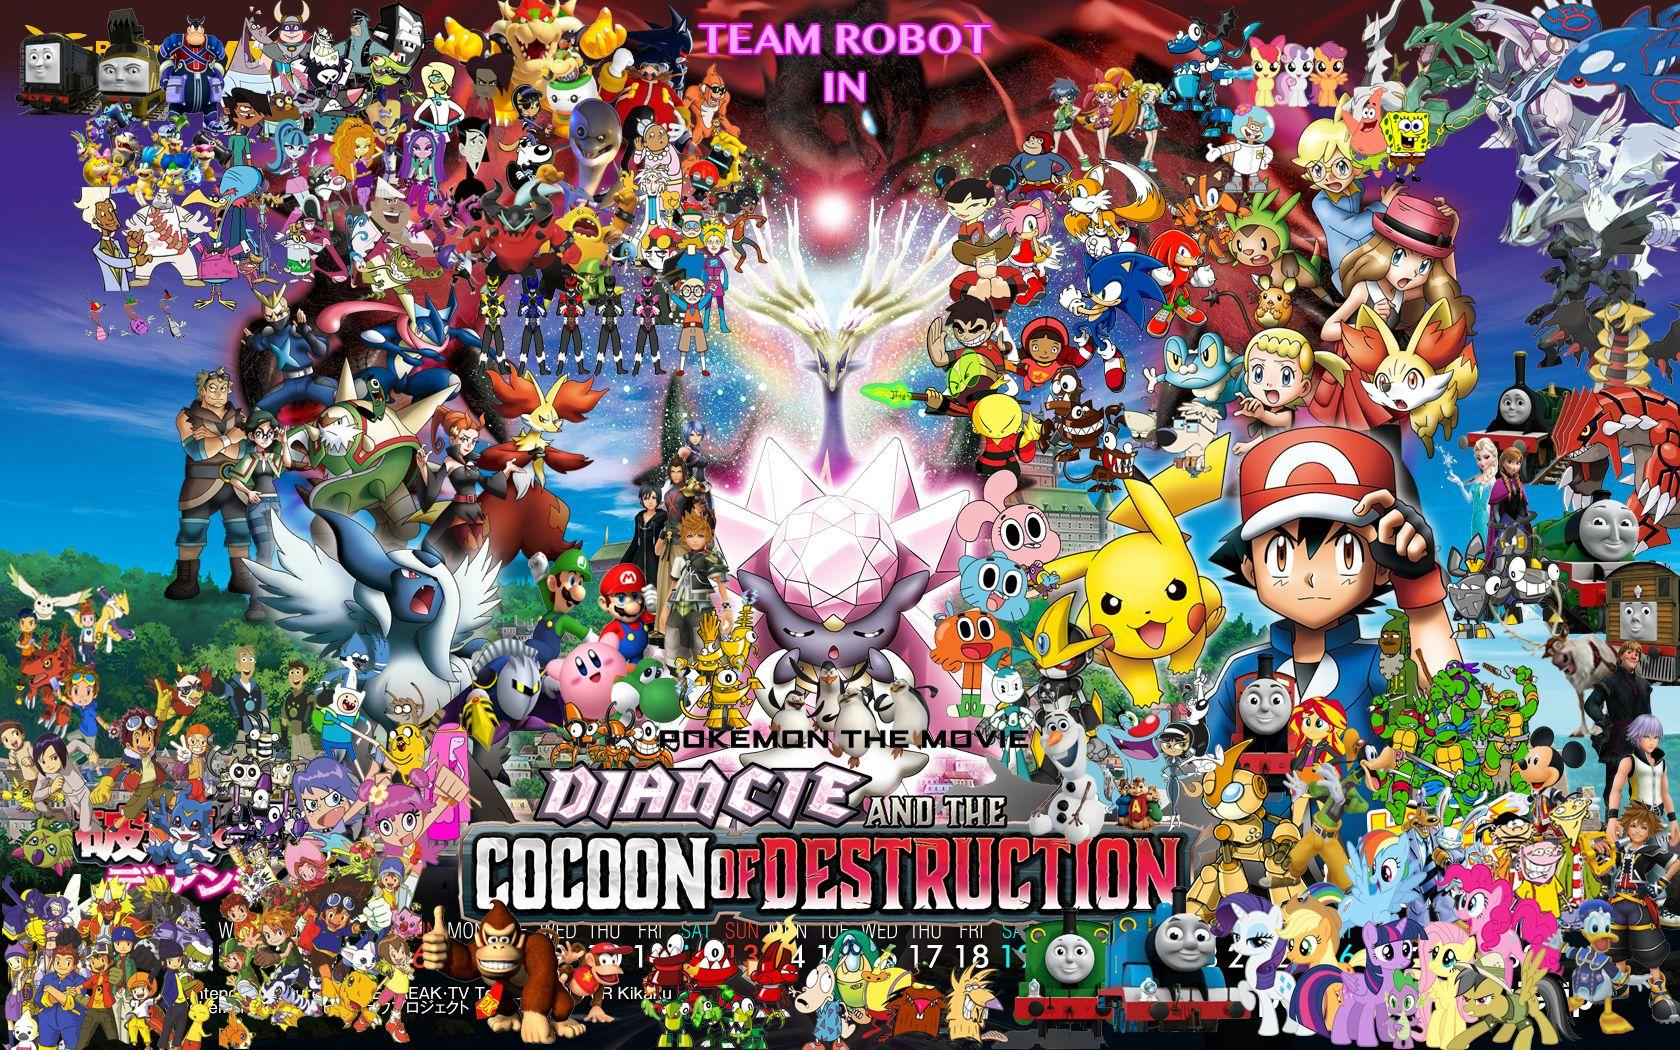 Team Robot in Pokemon: Diancie & The Cocoon of Destruction